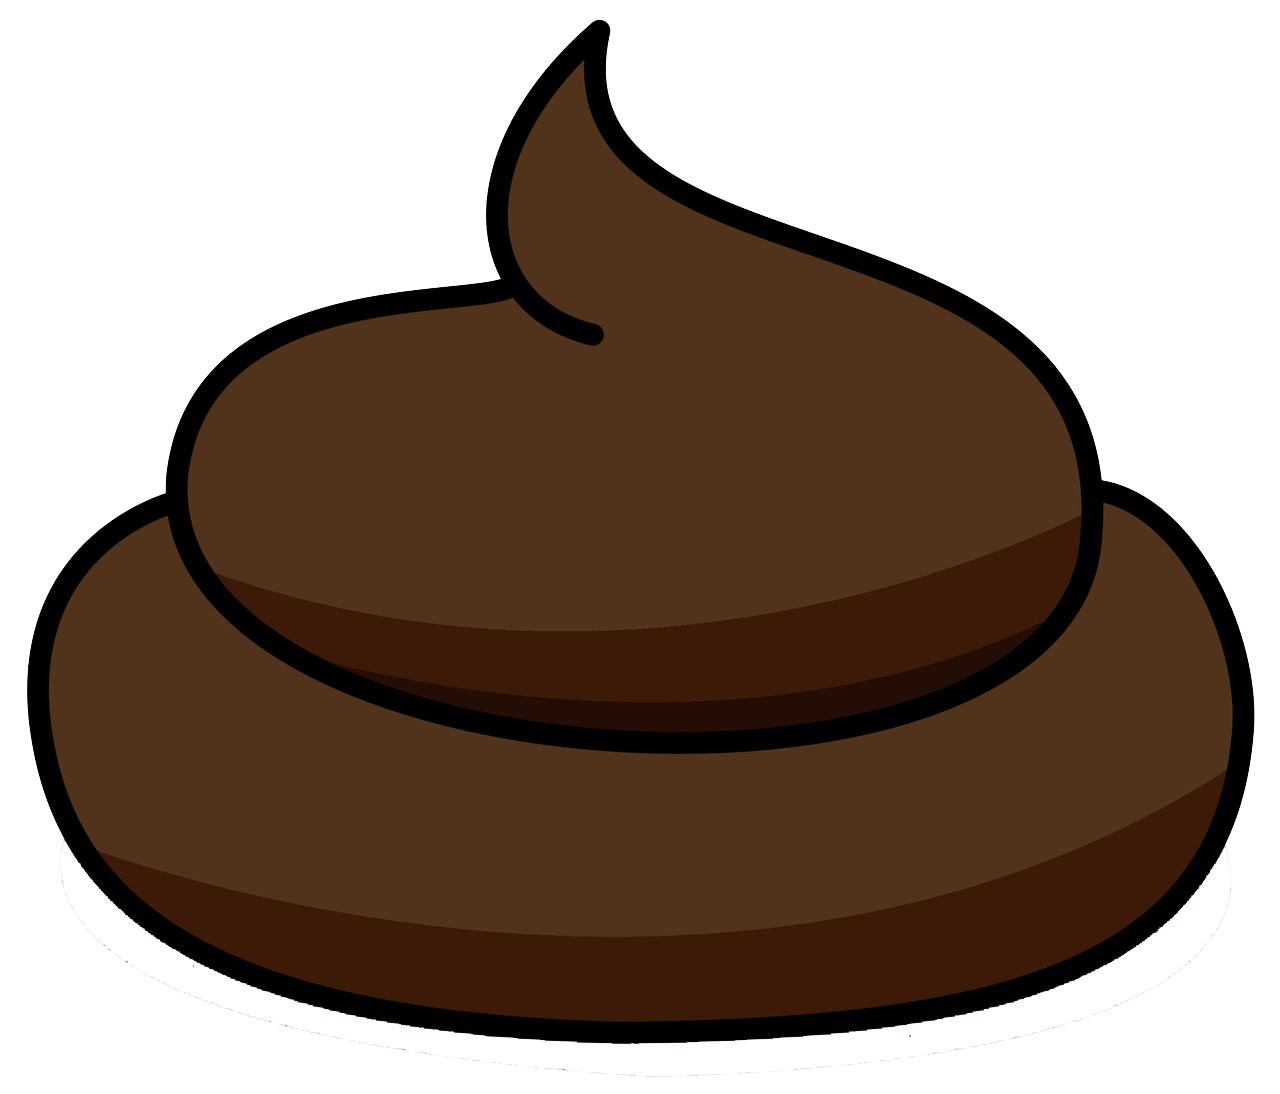 Chocolate puddle png